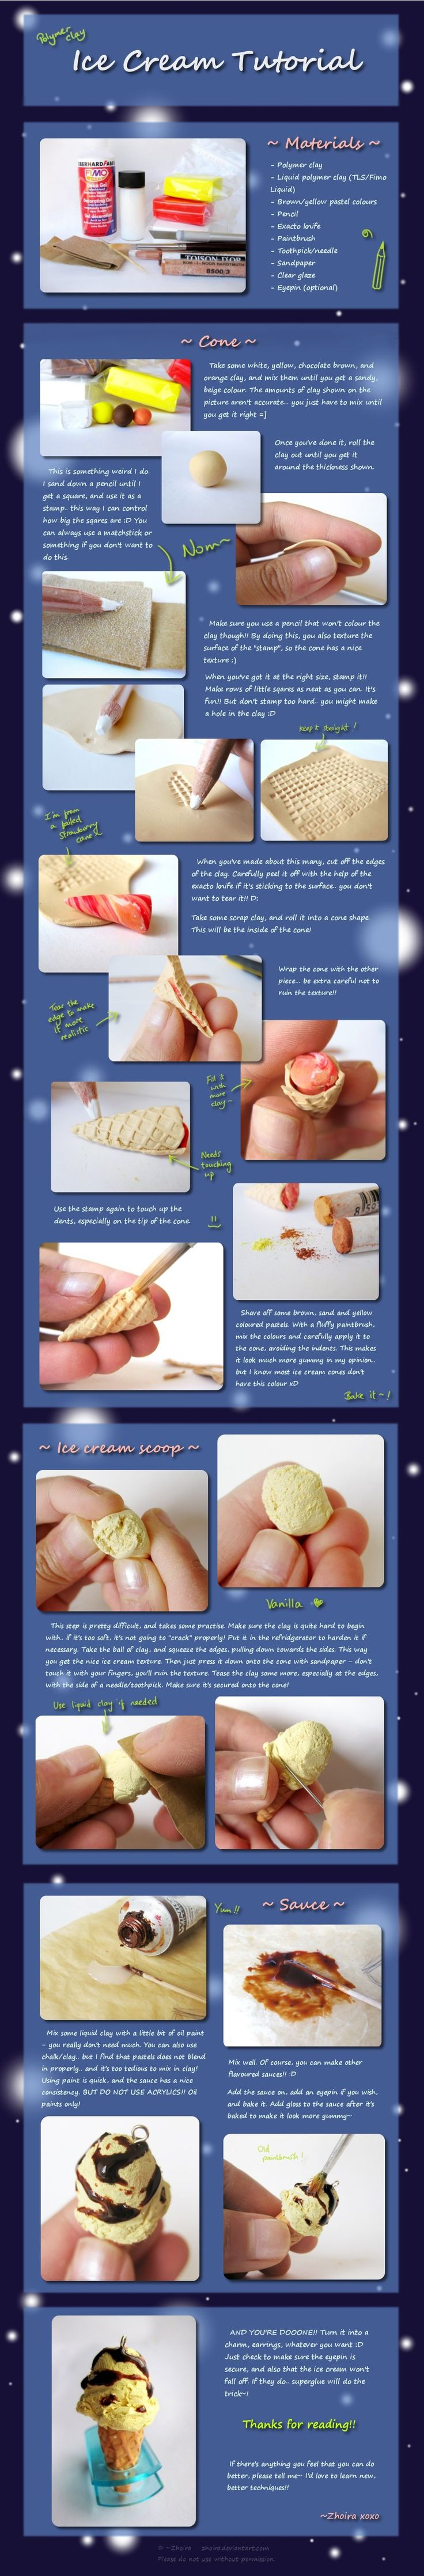 Mini ice cream & waffle cone tutorial with chocolate sauce -  to use as a charm. Cute. Probably not something I'd make, but a couple of neat tricks/tips